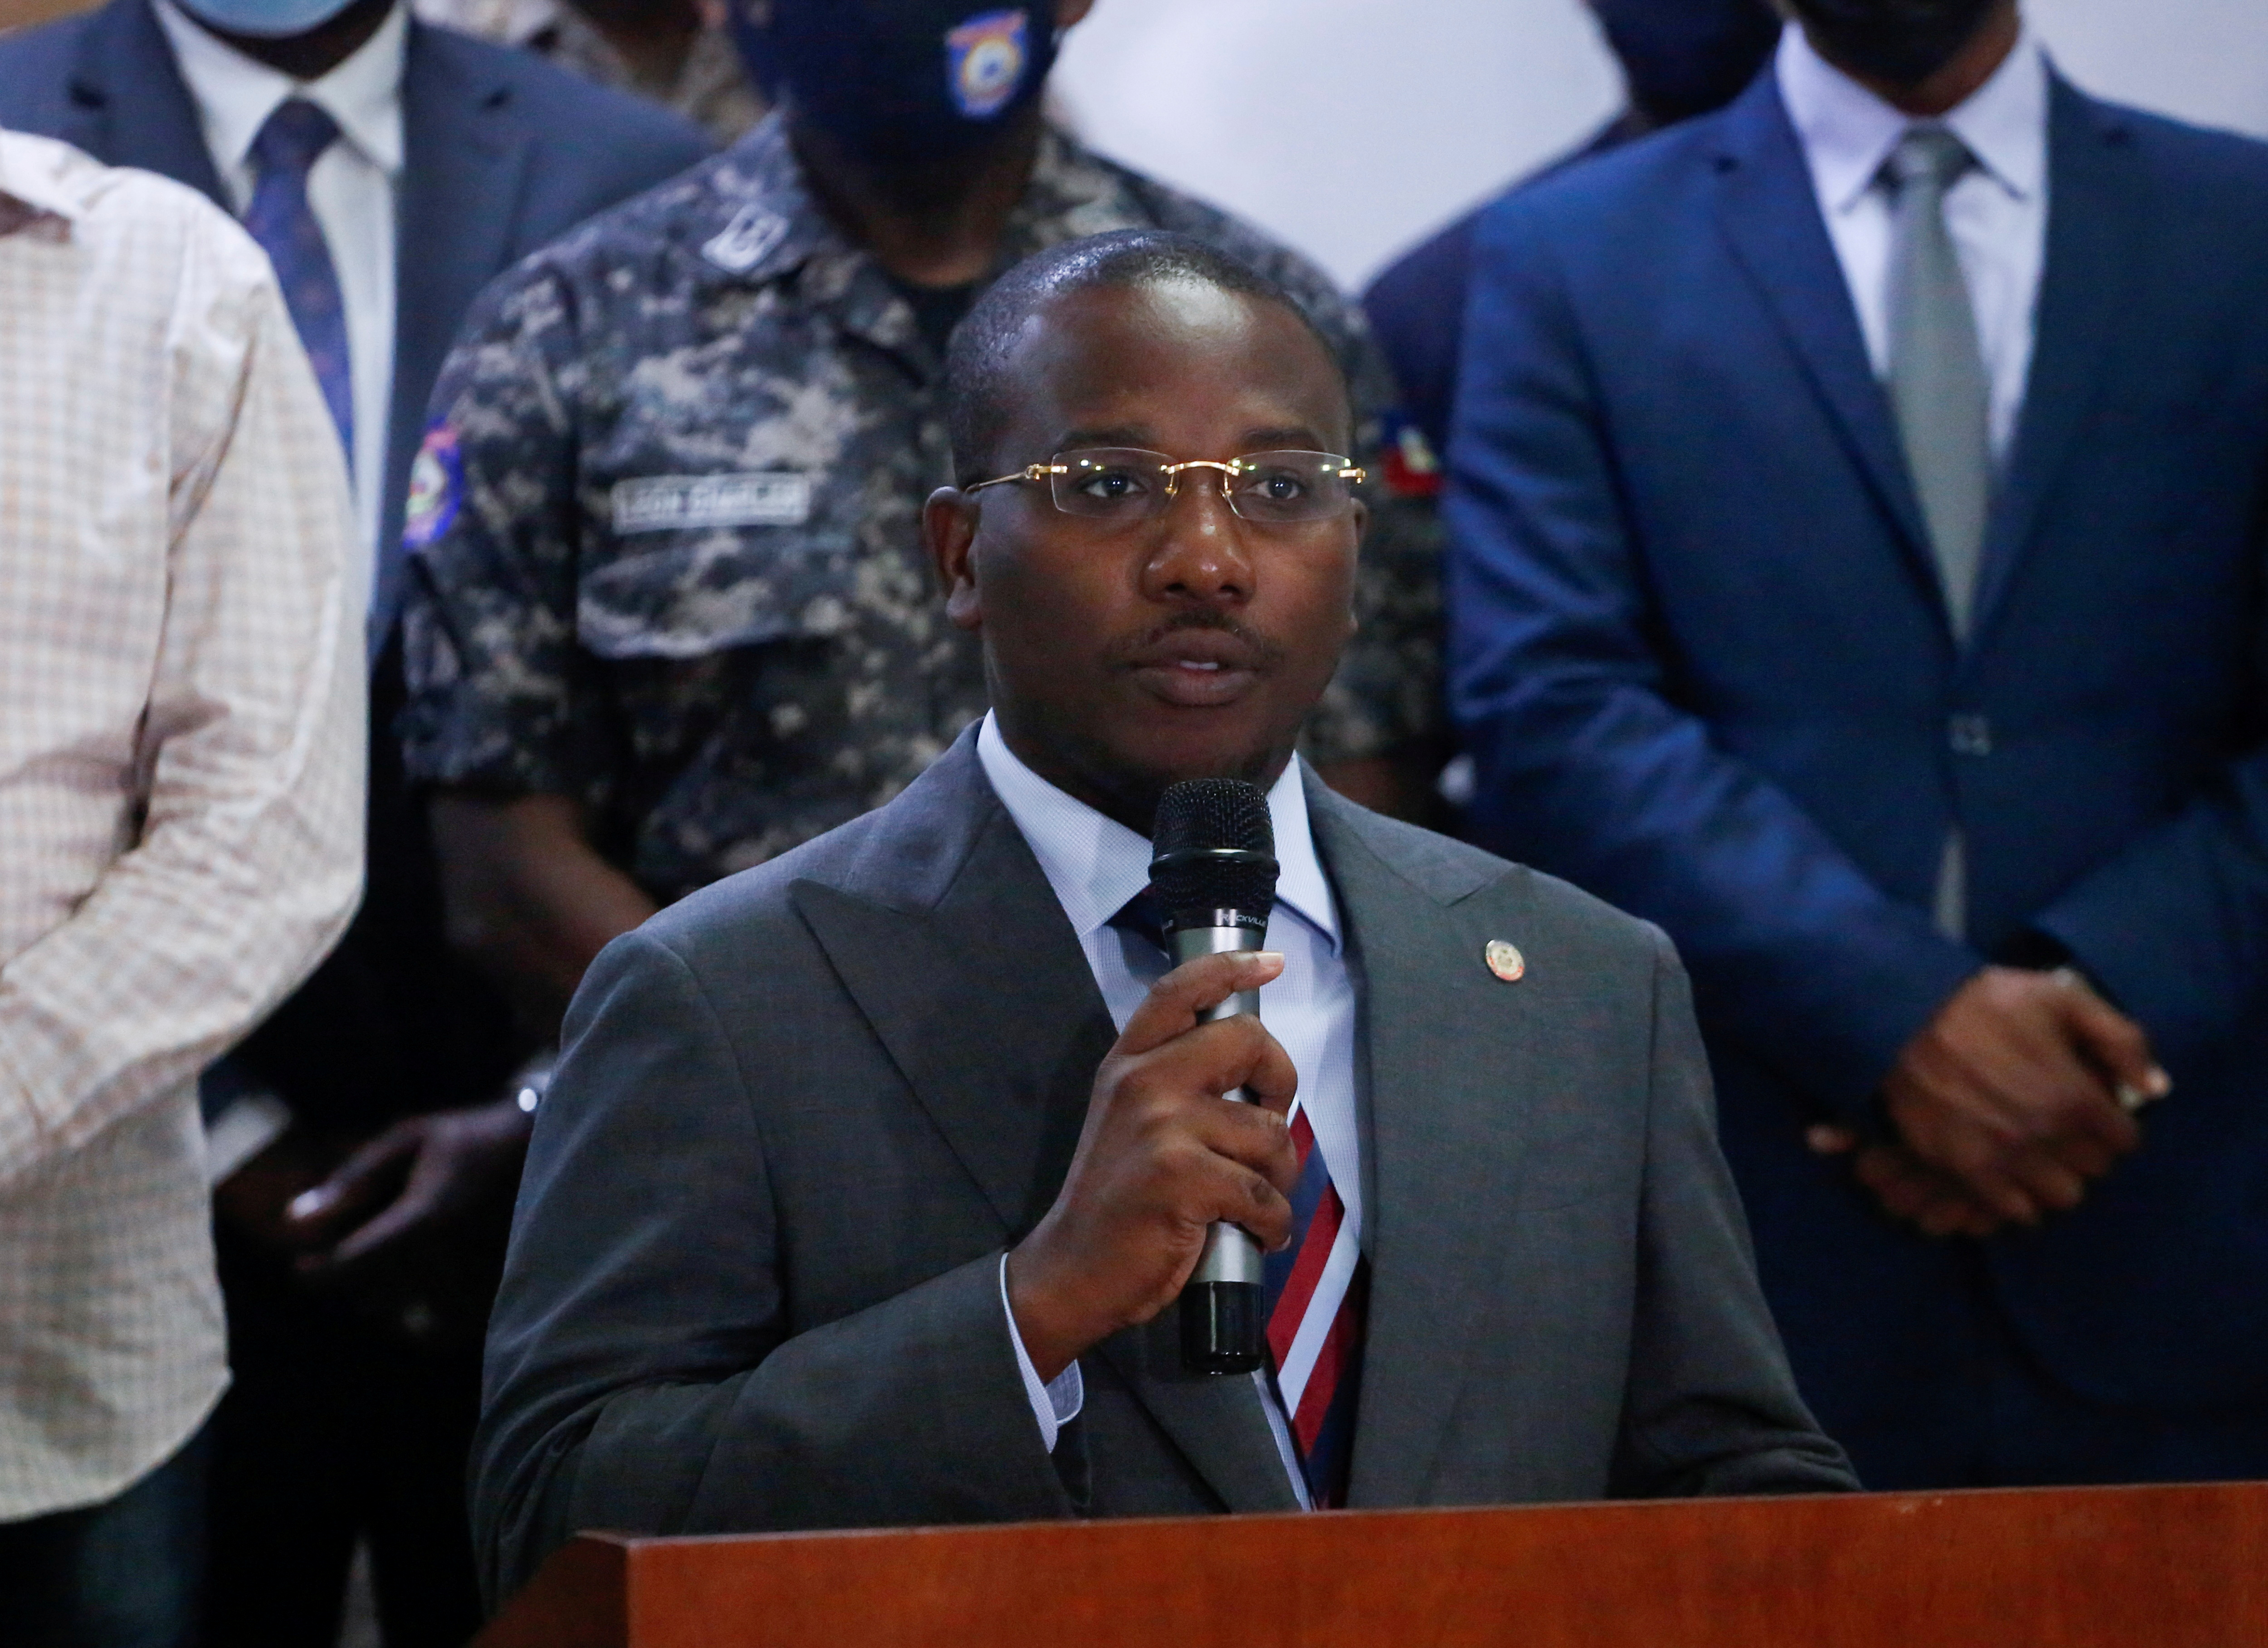 Haiti's interim Prime Minister Claude Joseph addresses the audience after suspects in the assassination of President Jovenel Moise, who was shot dead early Wednesday at his home, were shown to the media, in Port-au-Prince, Haiti July 8, 2021. REUTERS/Estailove St-Val/File Photo